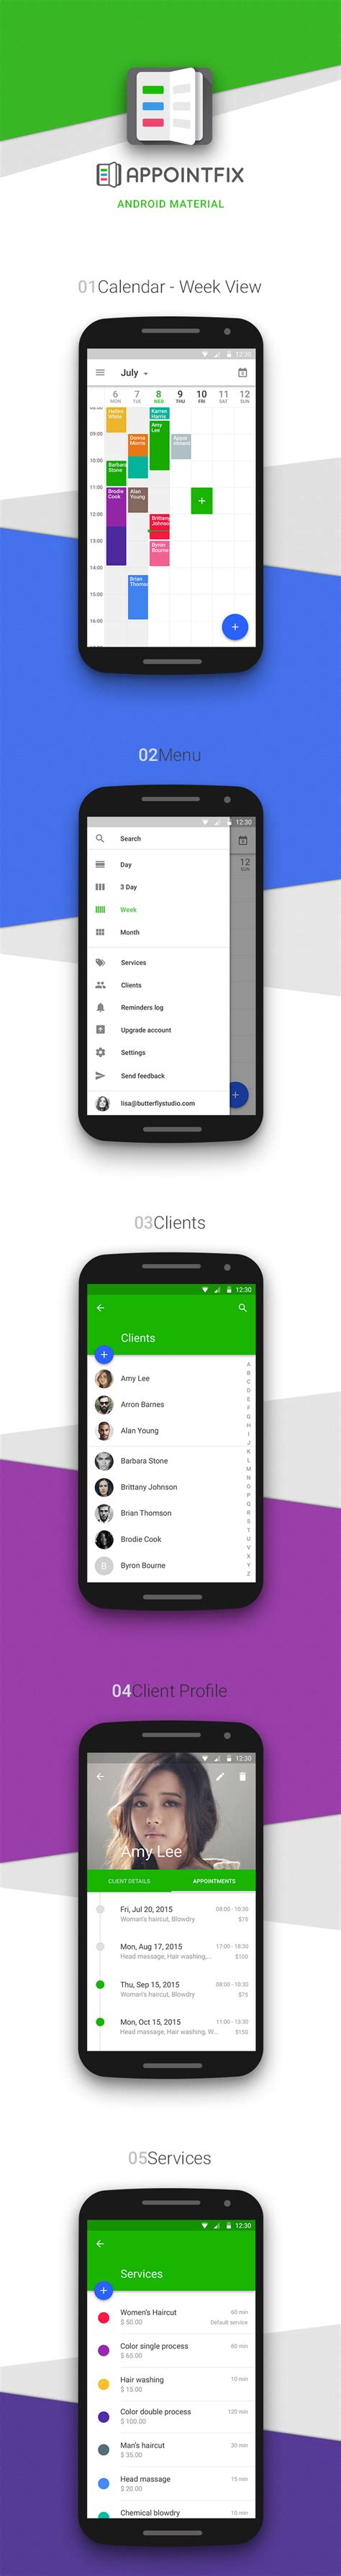 material design guidelines android appointfix 2 0 android material design showcase mobiversal